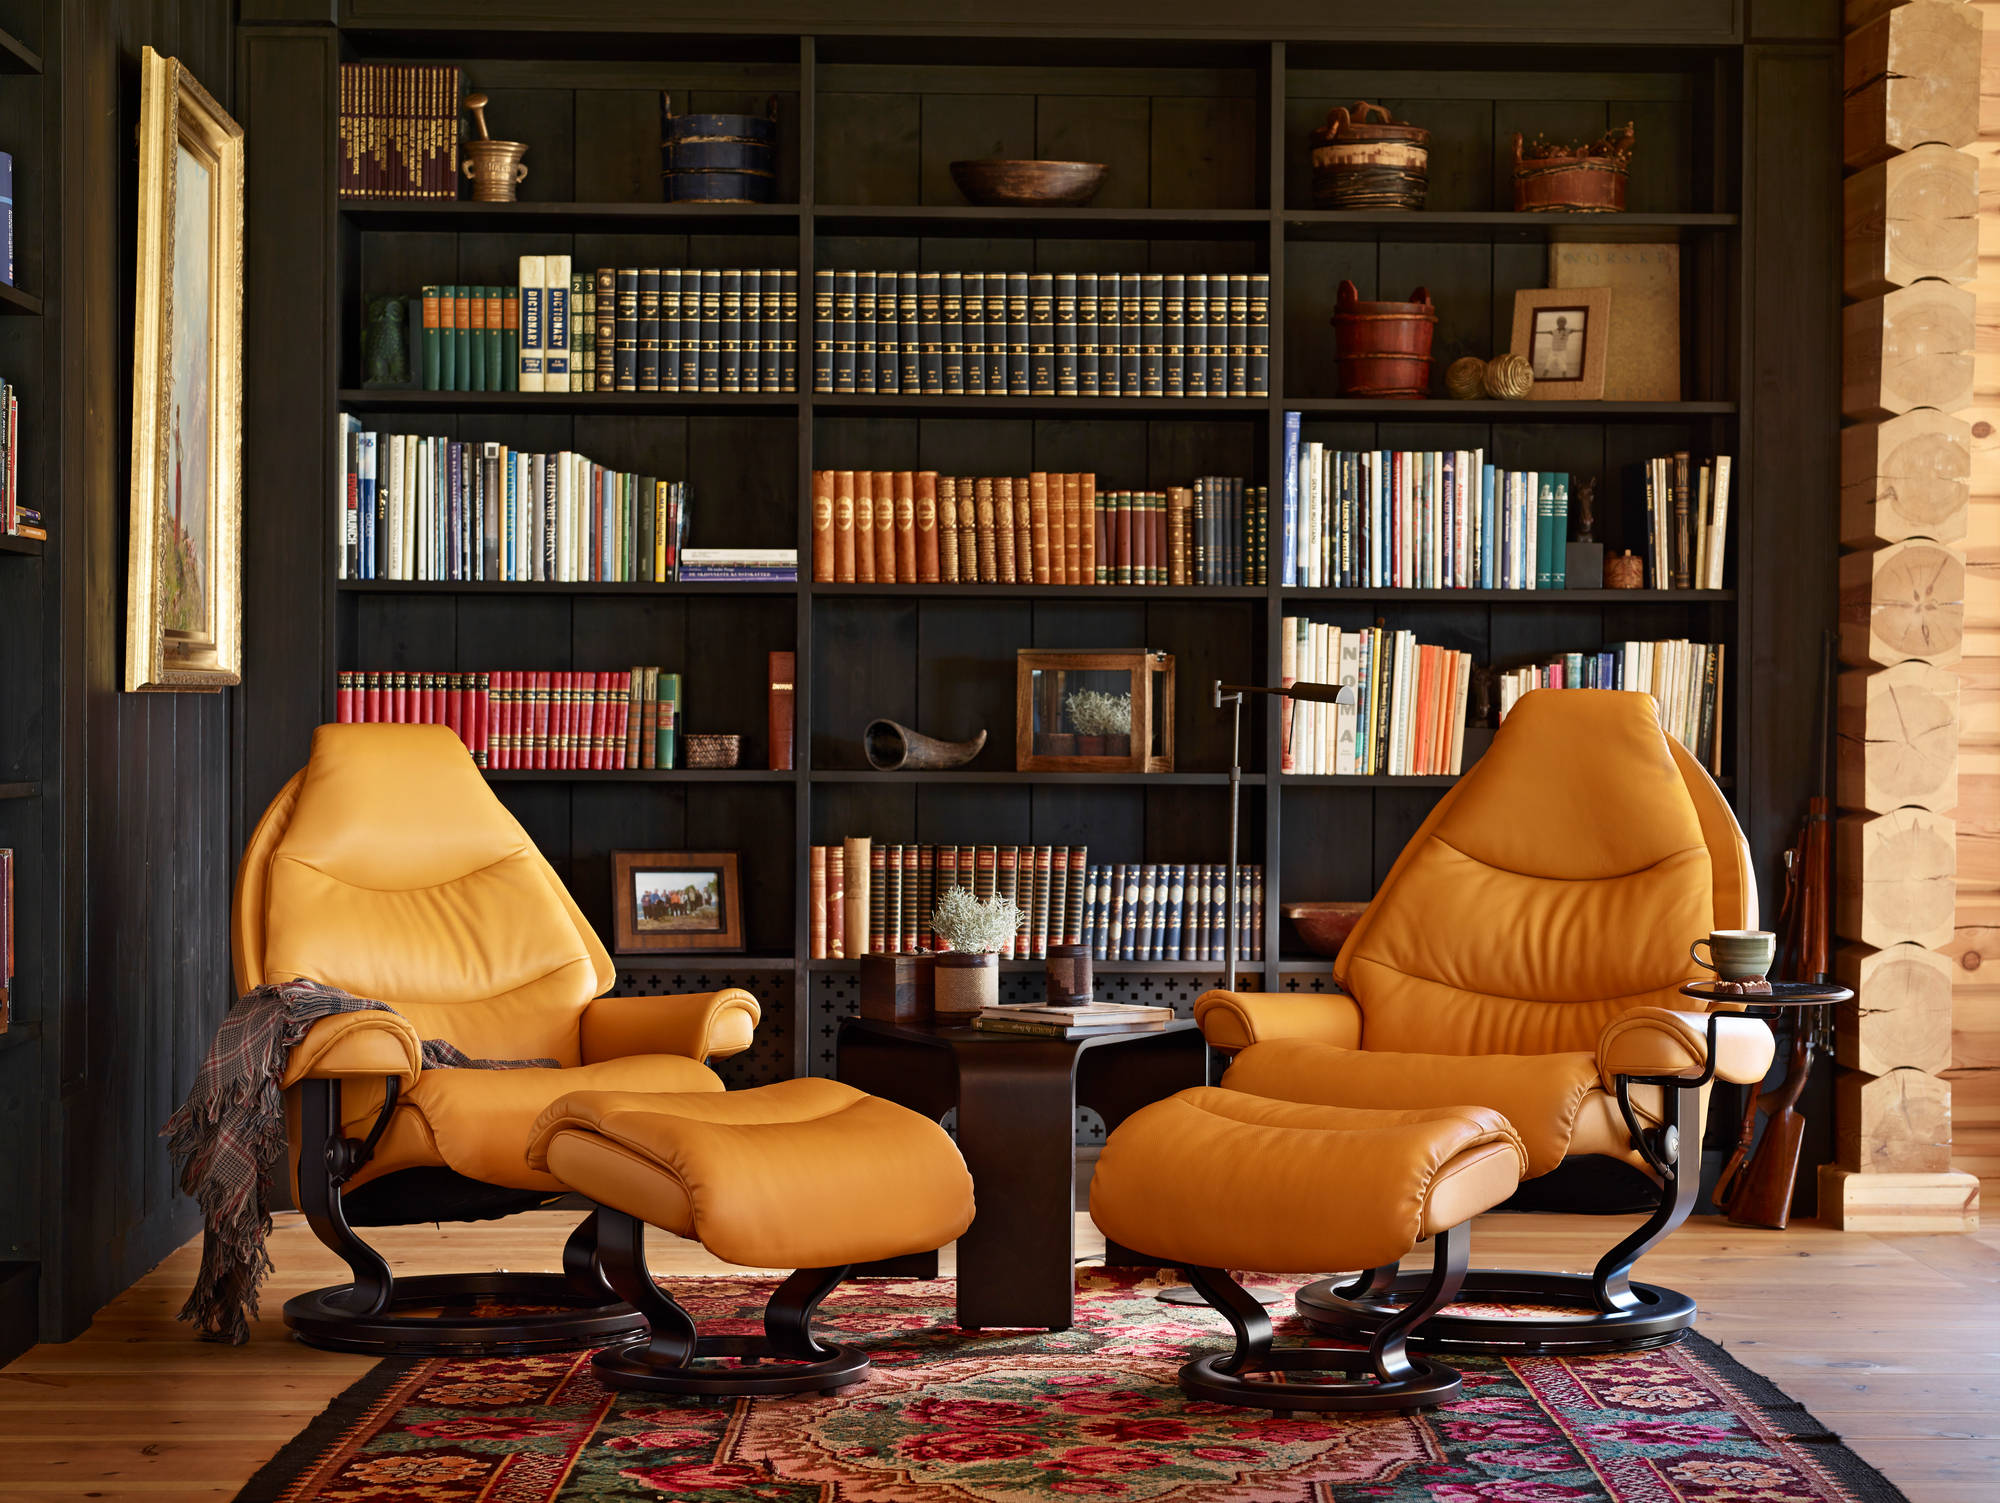 Voyager Recliners in Cori Mustard Leather